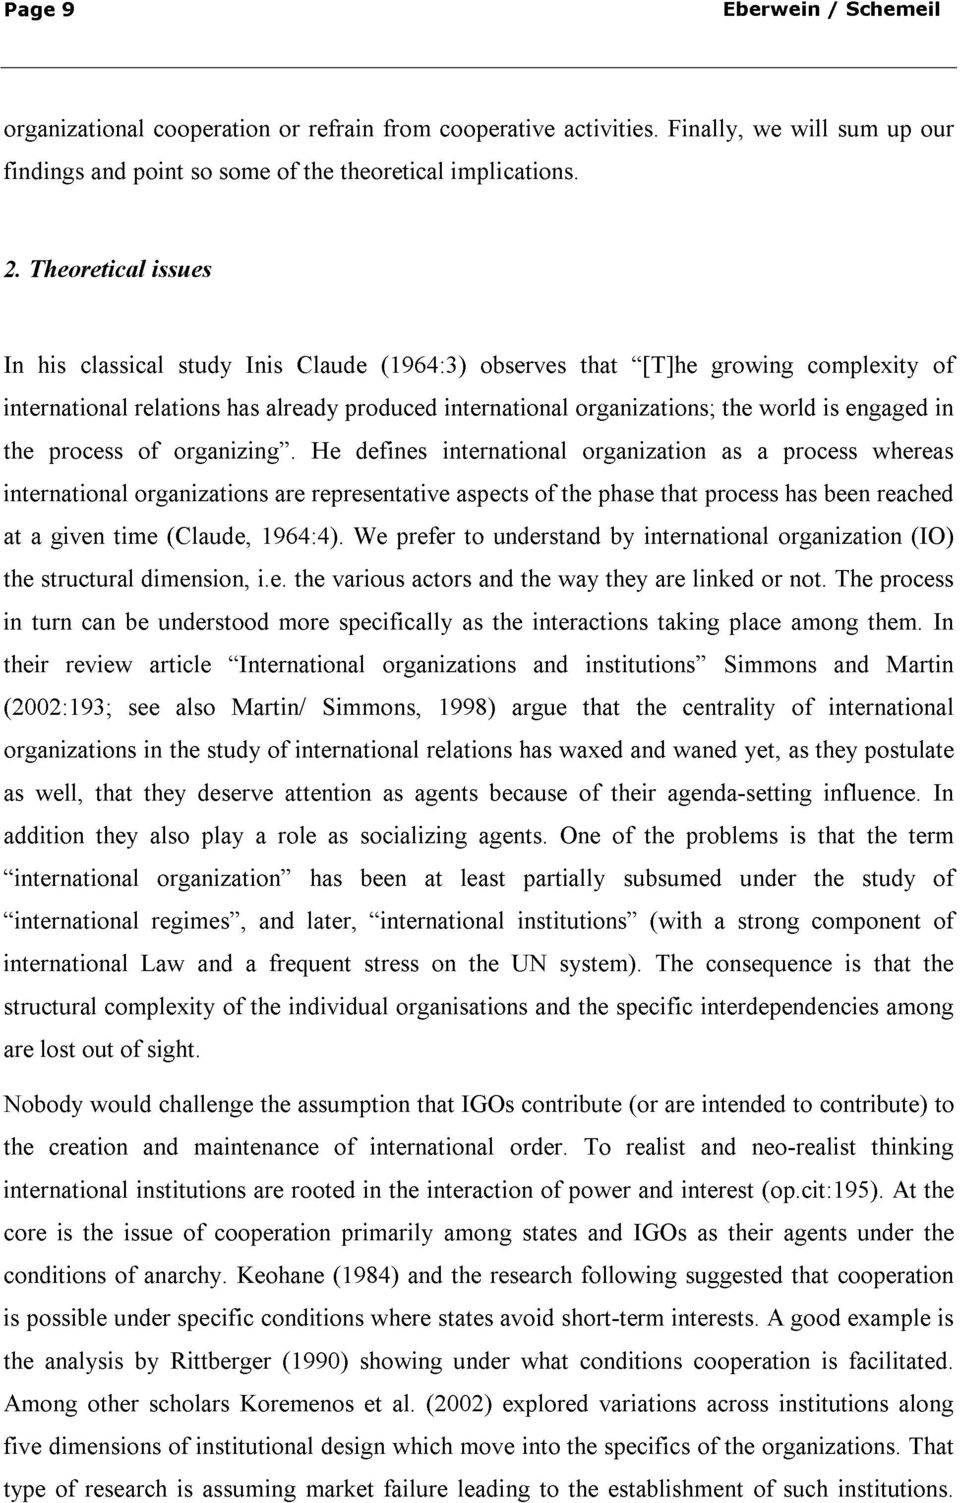 study has Inis already are Claude representative He produced defines (1964:3) international aspects observes of the organizations; that phase [T]he that process growing as the a world process has